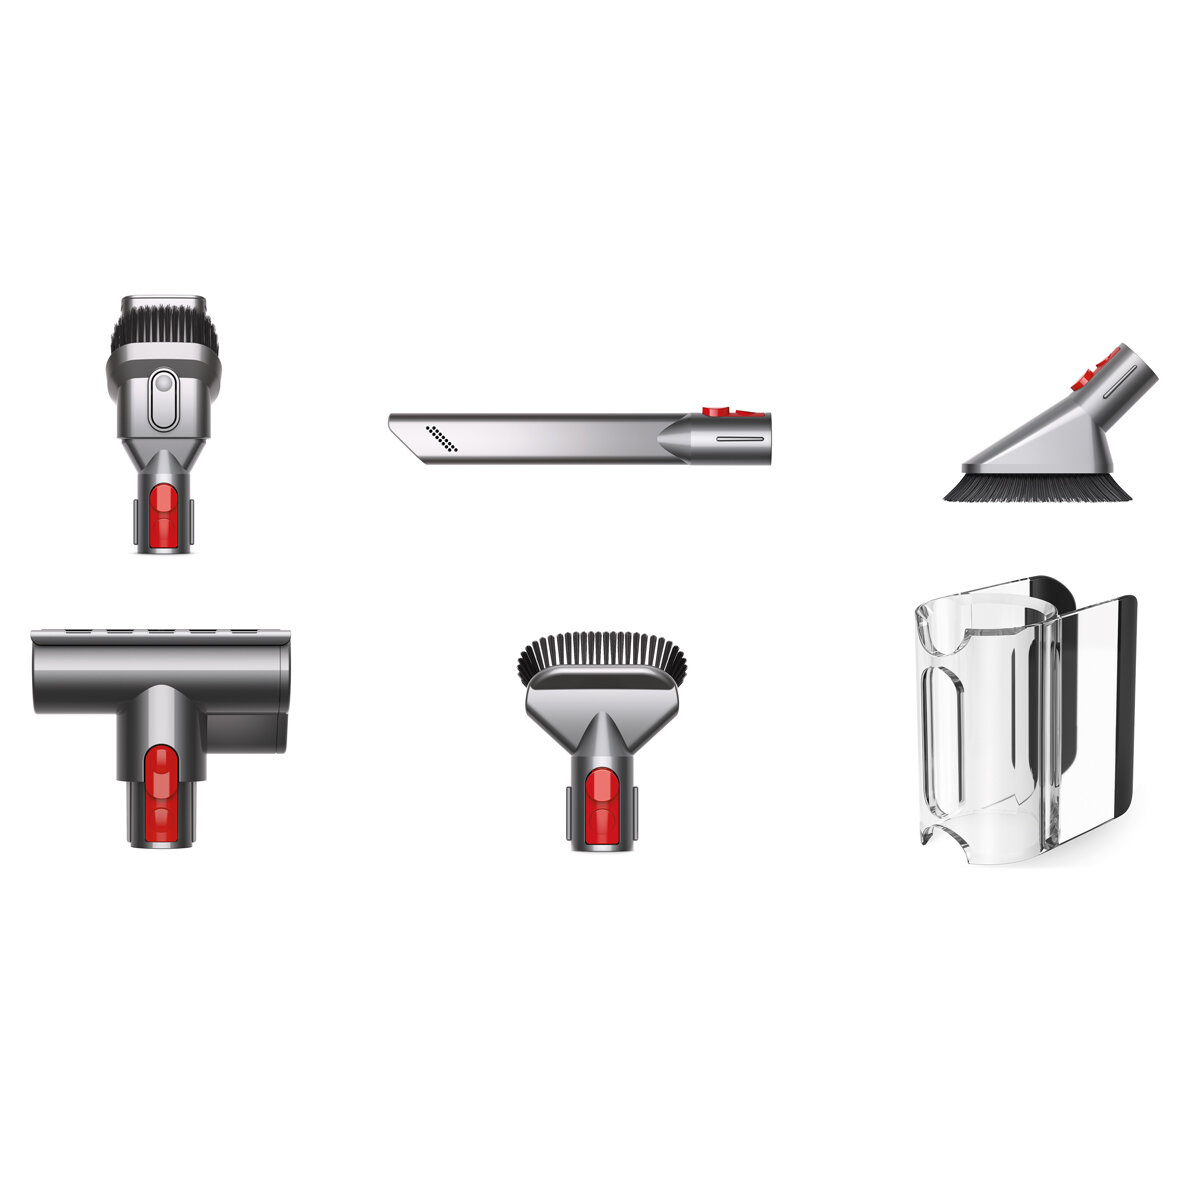 New Dyson V11 Absolute Cordless Vacuum Cleaner 268734 01